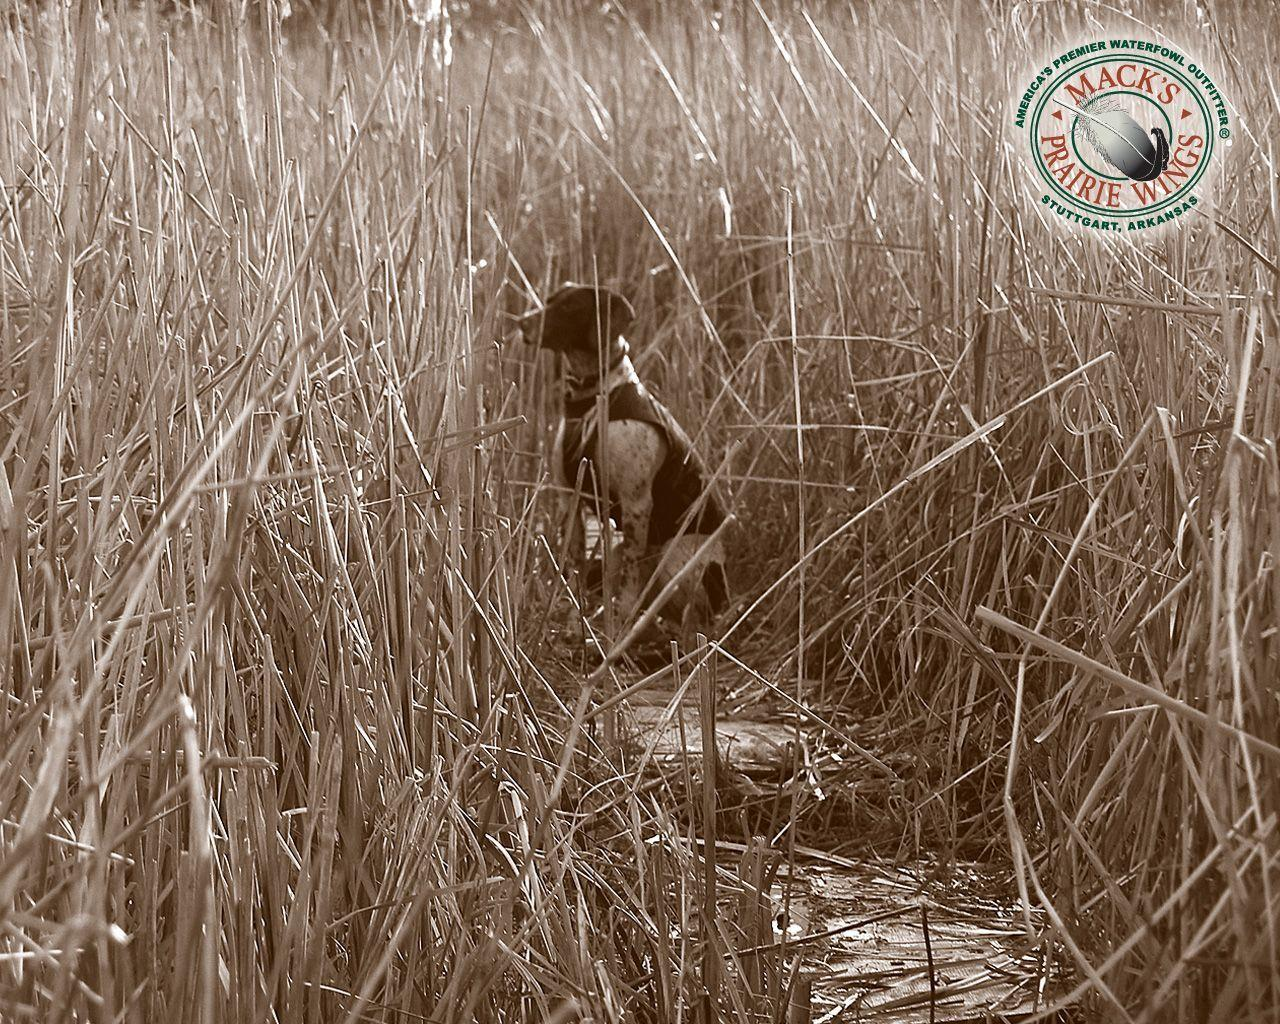 duck hunting camo backgrounds - photo #22